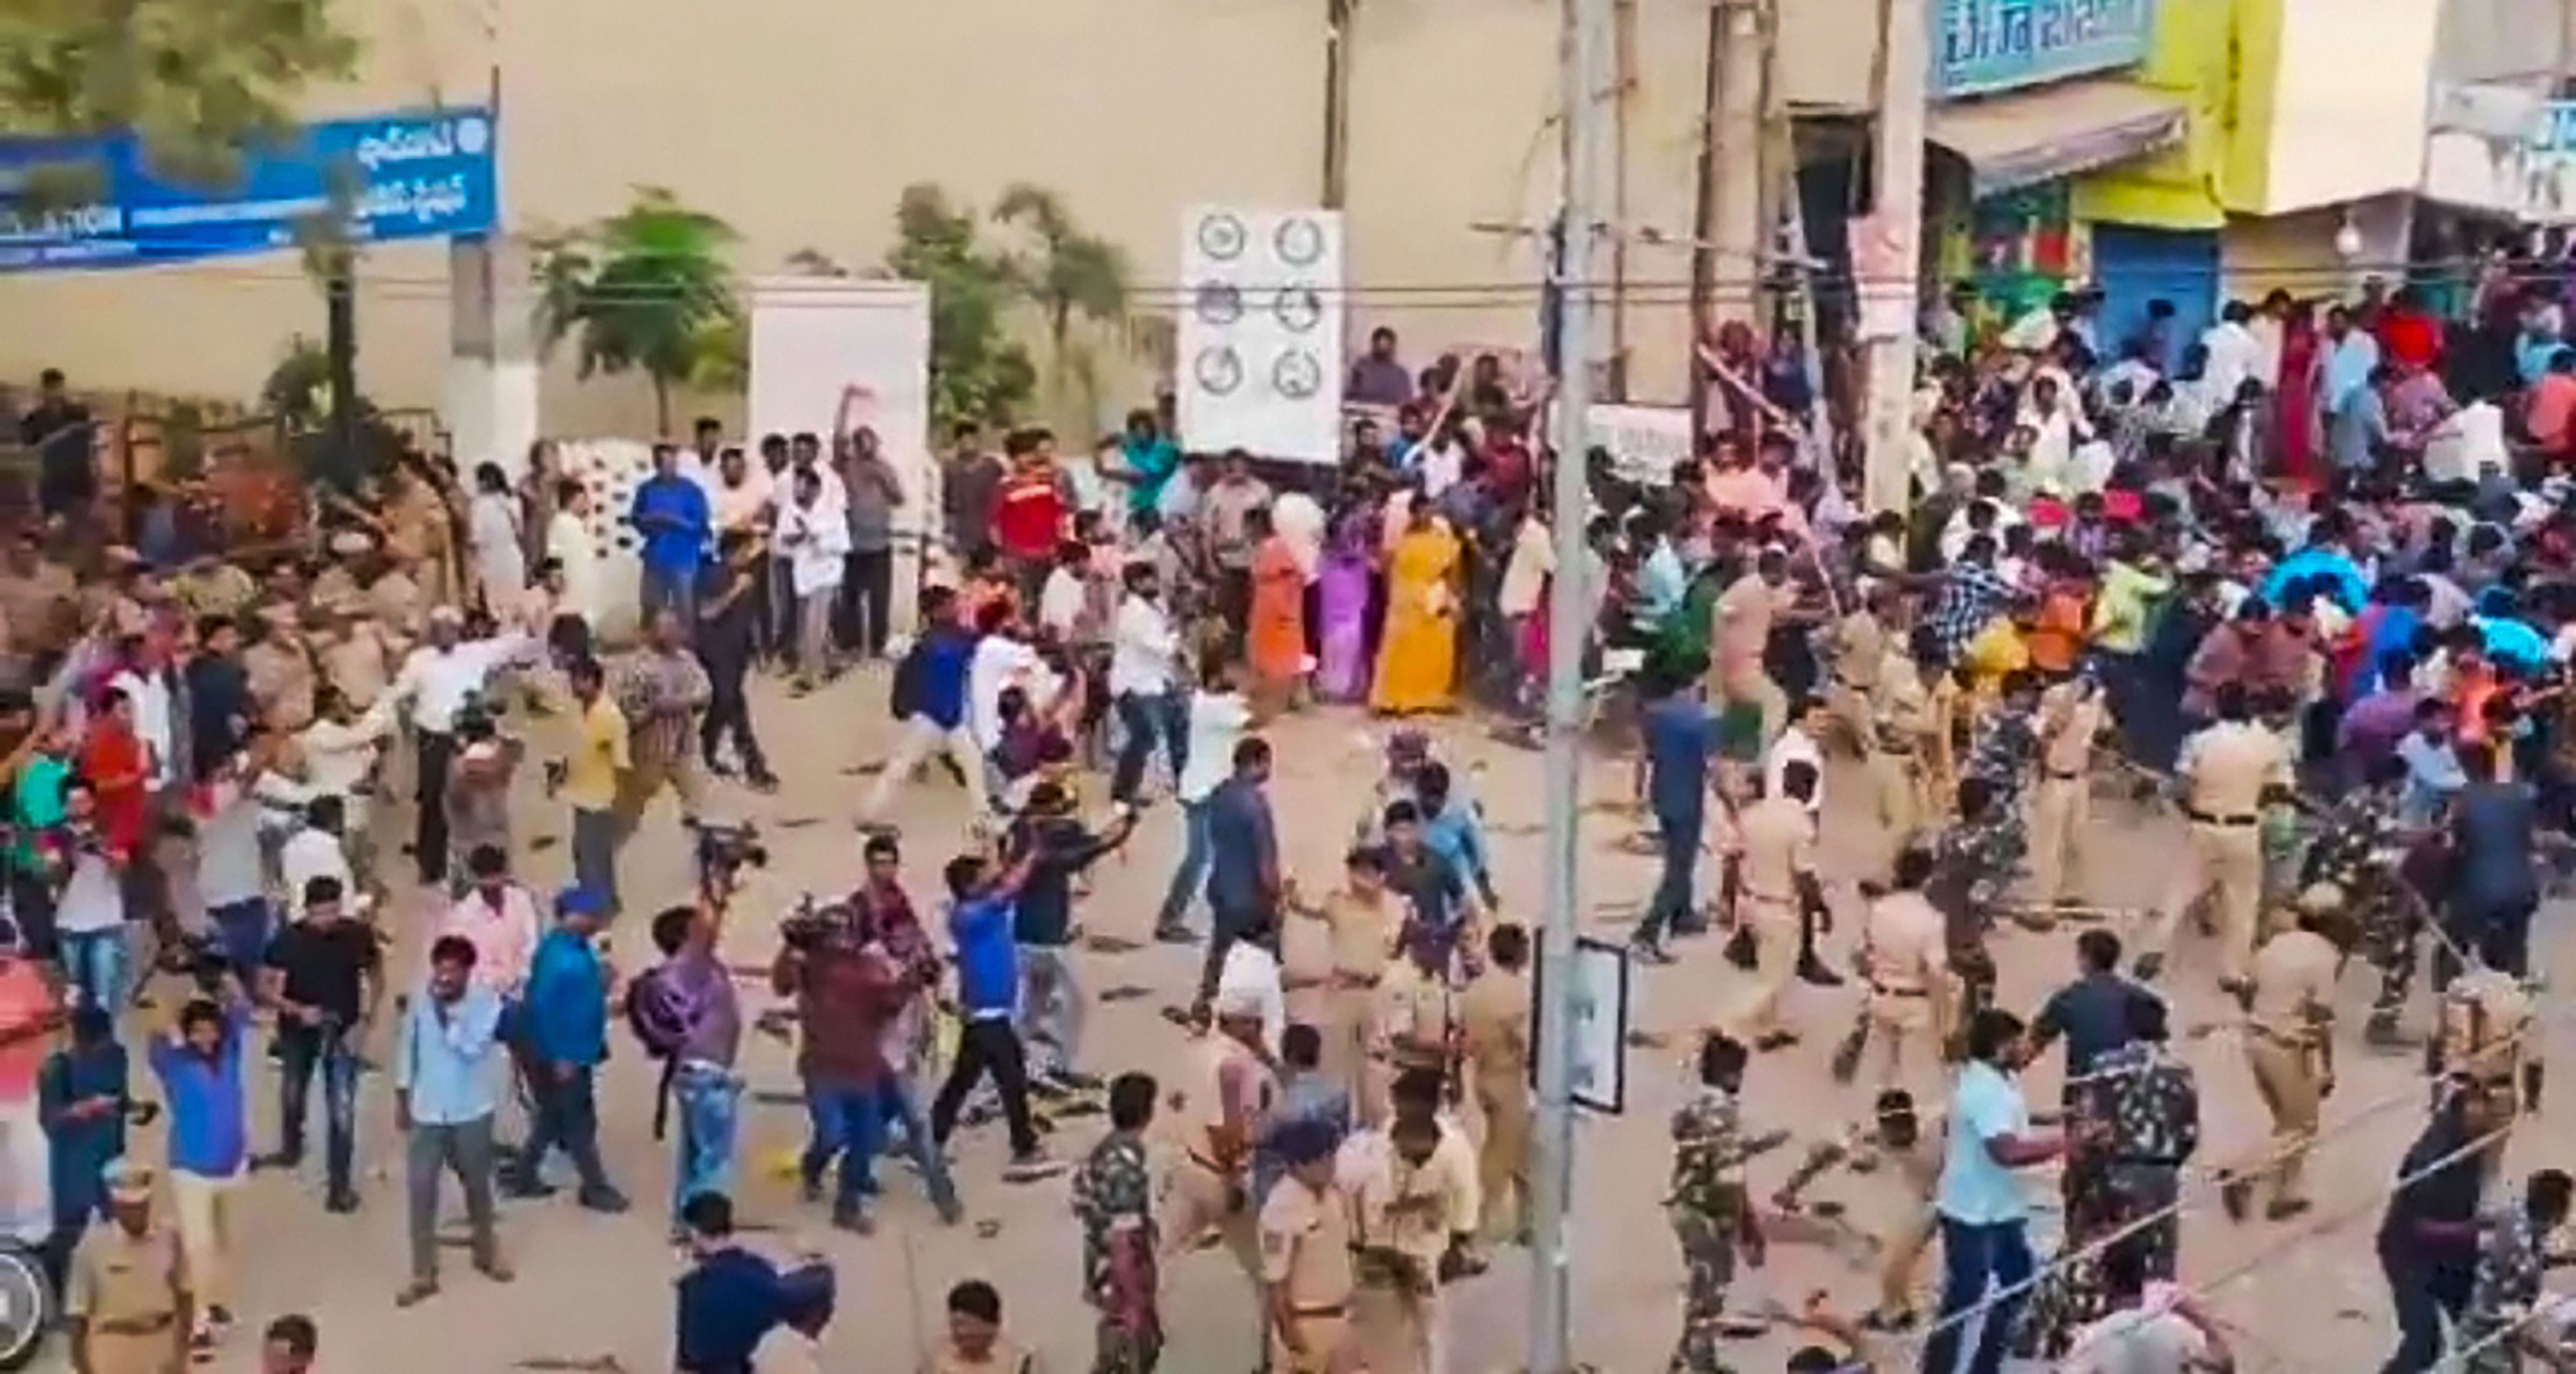 Protesters and police clash during a demonstration demanding justice for the murdered Veterinarian, whose charred remains was found under a culvert, in Hyderabad, Saturday, November 30, 2019.